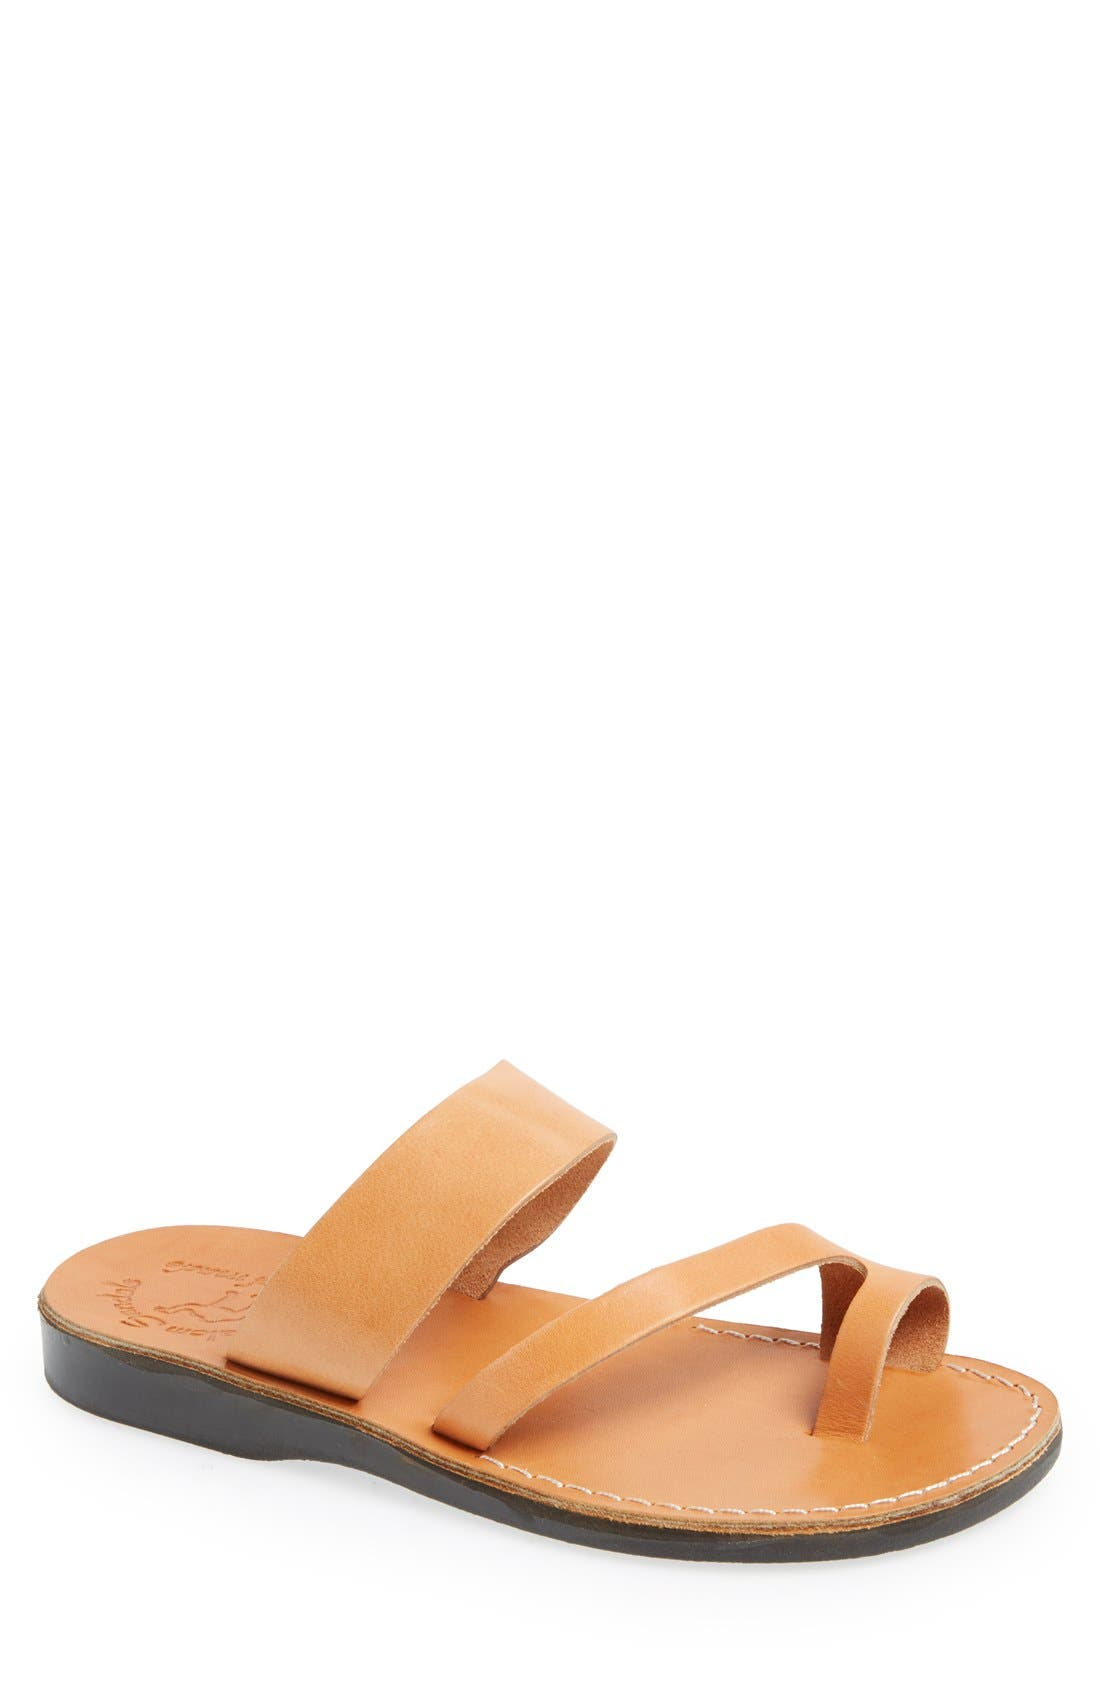 'Zohar' Leather Sandal,                             Main thumbnail 1, color,                             201